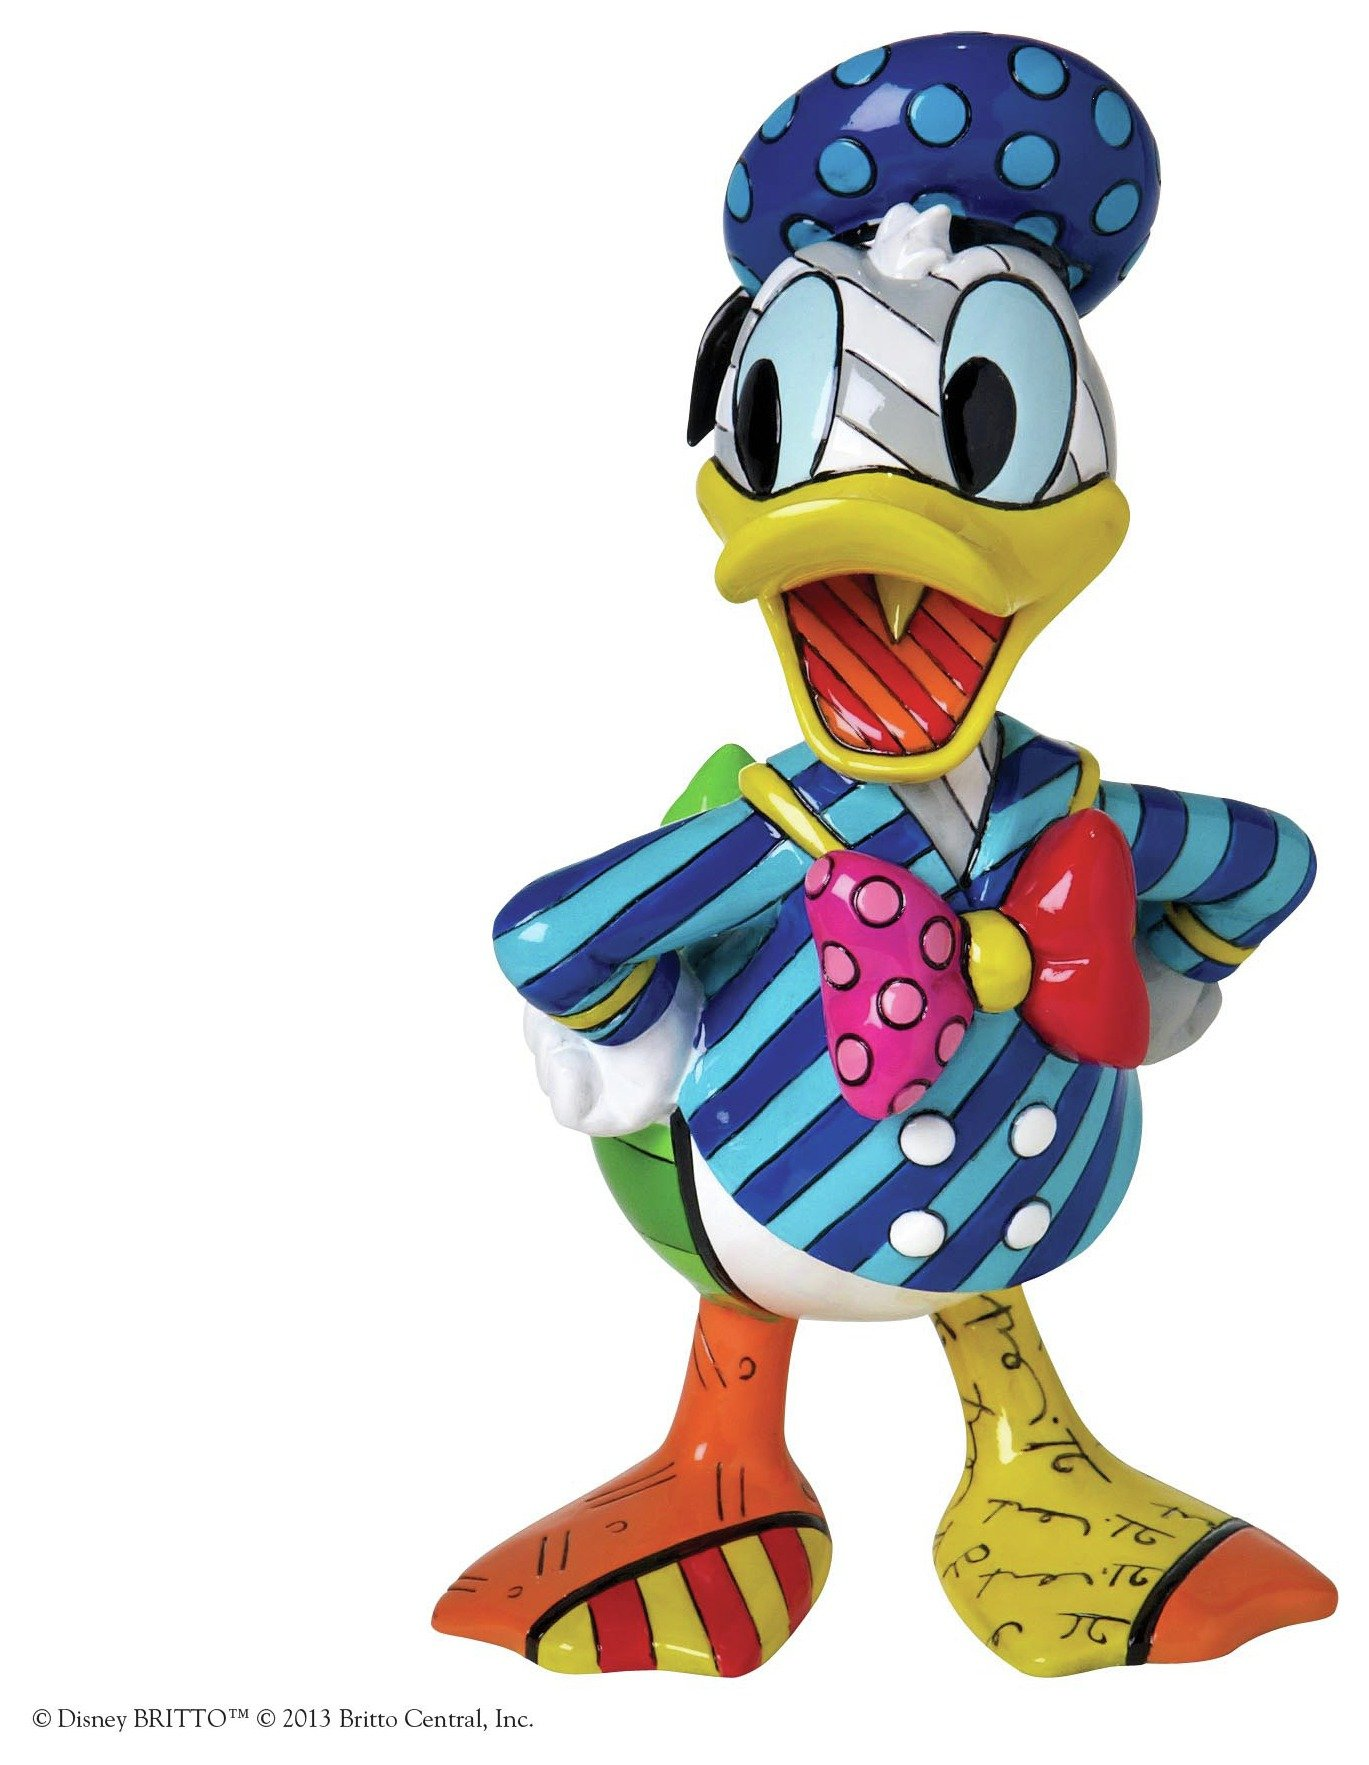 Image of Disney By Britto Donald Duck Figurine.